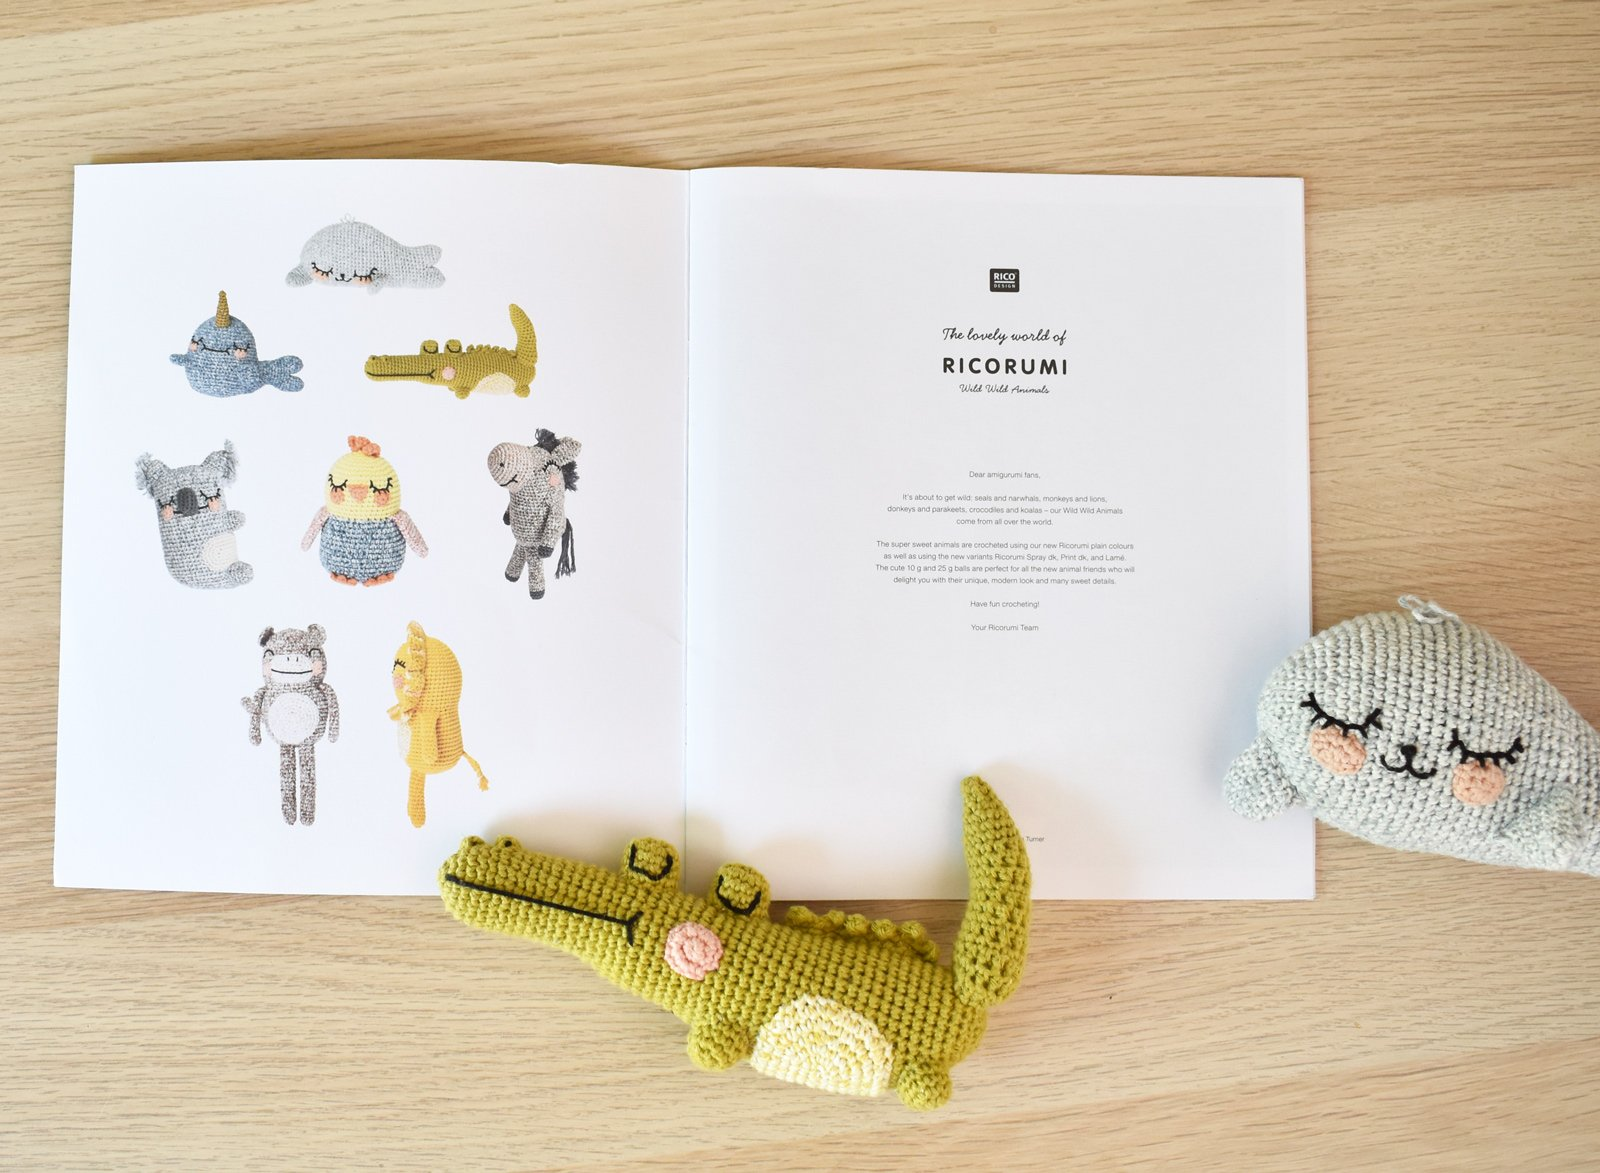 The Ricorumi Wild Wild Animals amigurumi pattern book sits opened on a wooden table. A crochet alligator and crochet seal sit on top of it.